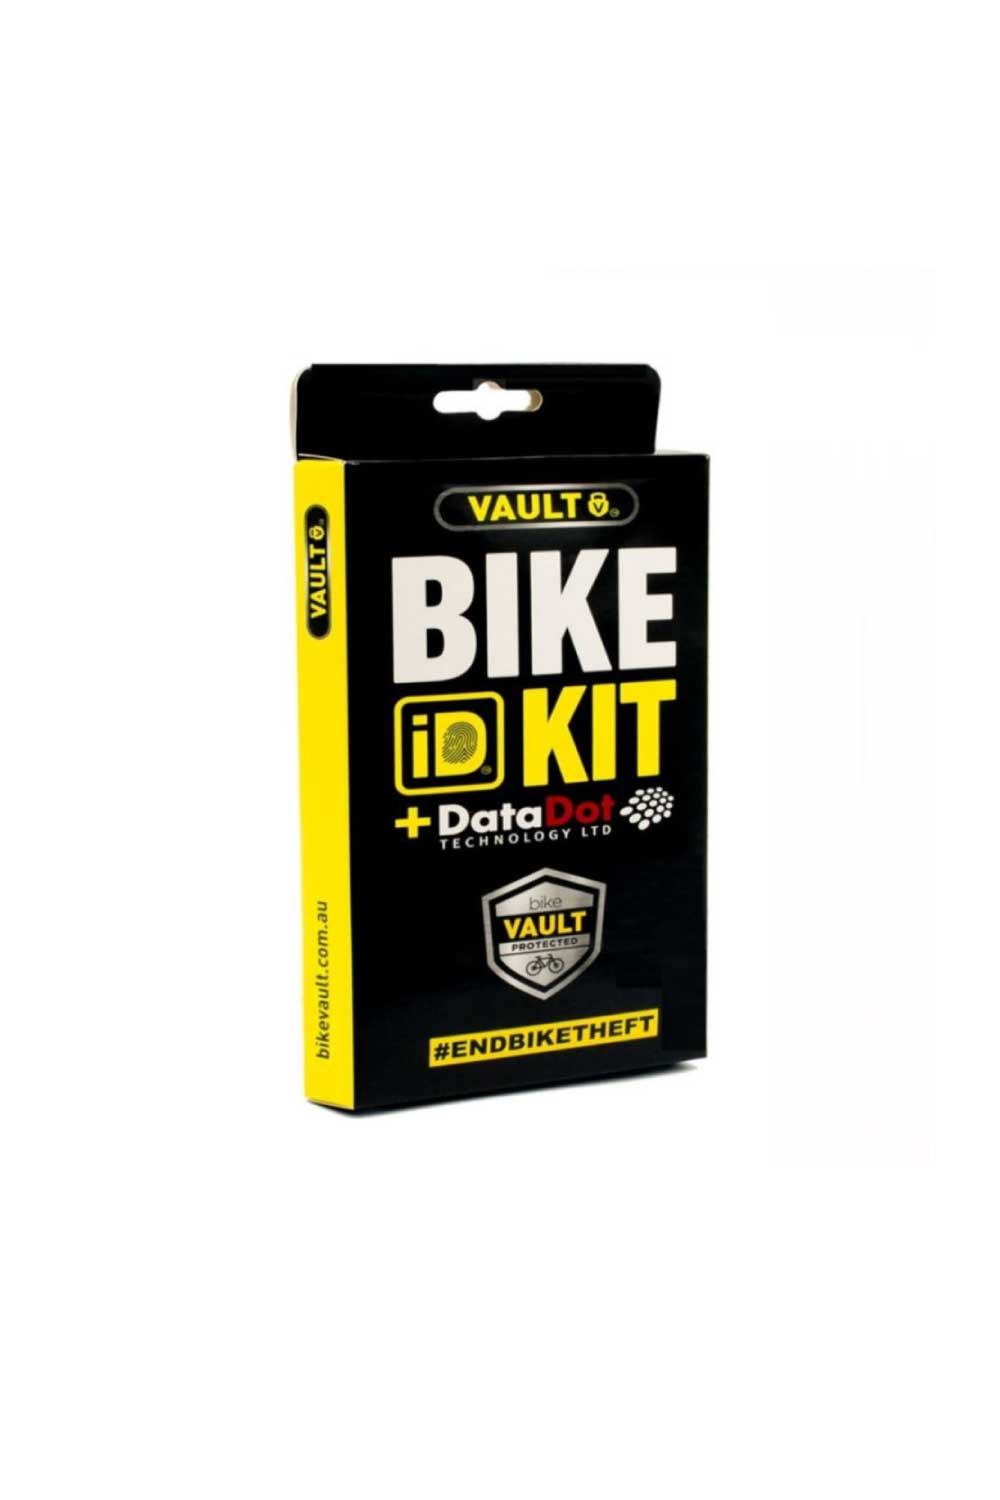 Vault Bike ID Kit+